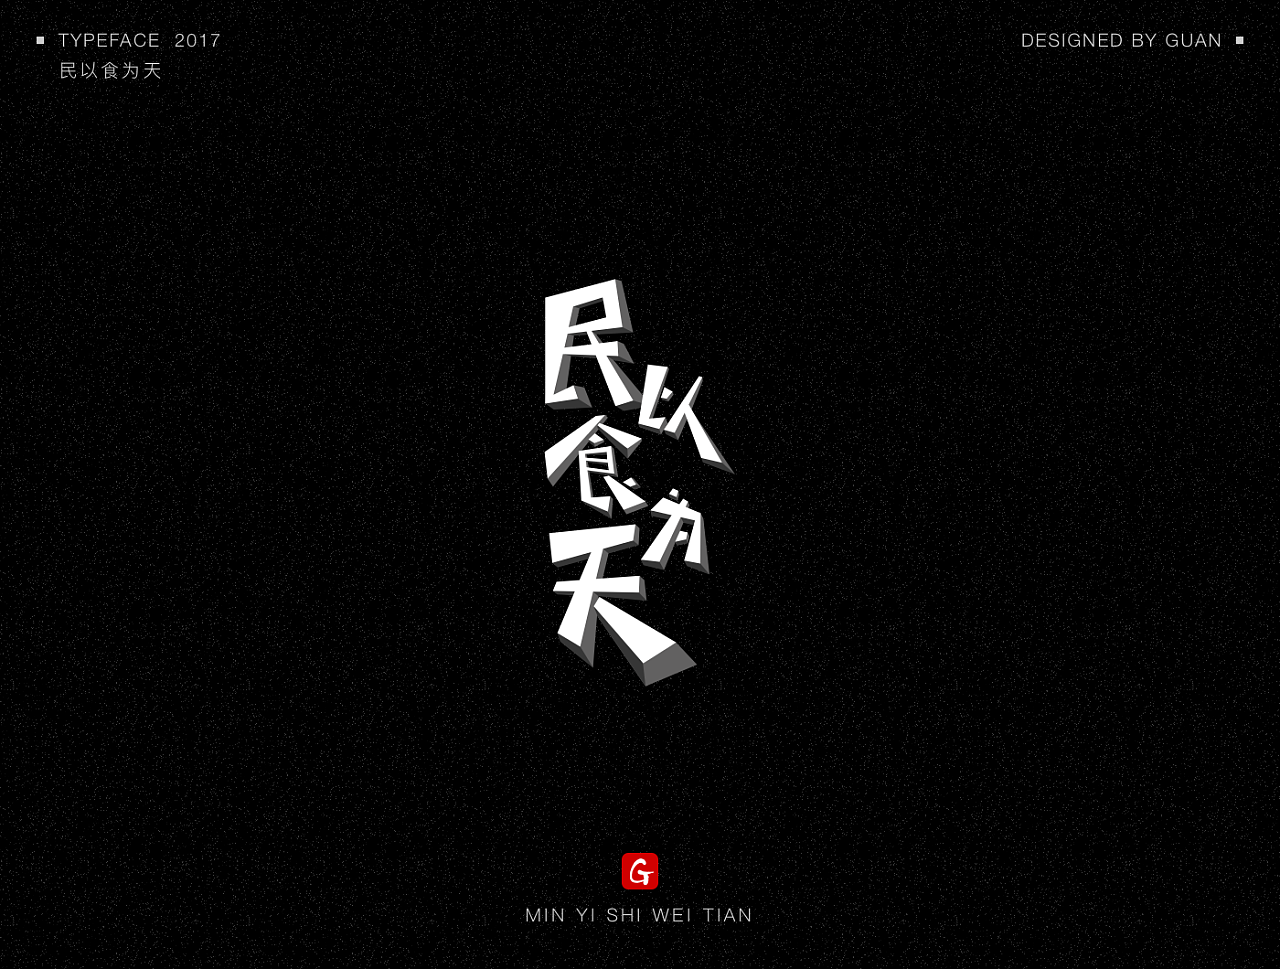 chinesefontdesign.com 2017 09 19 10 53 35 707451 20P Super fashionable Chinese font style design